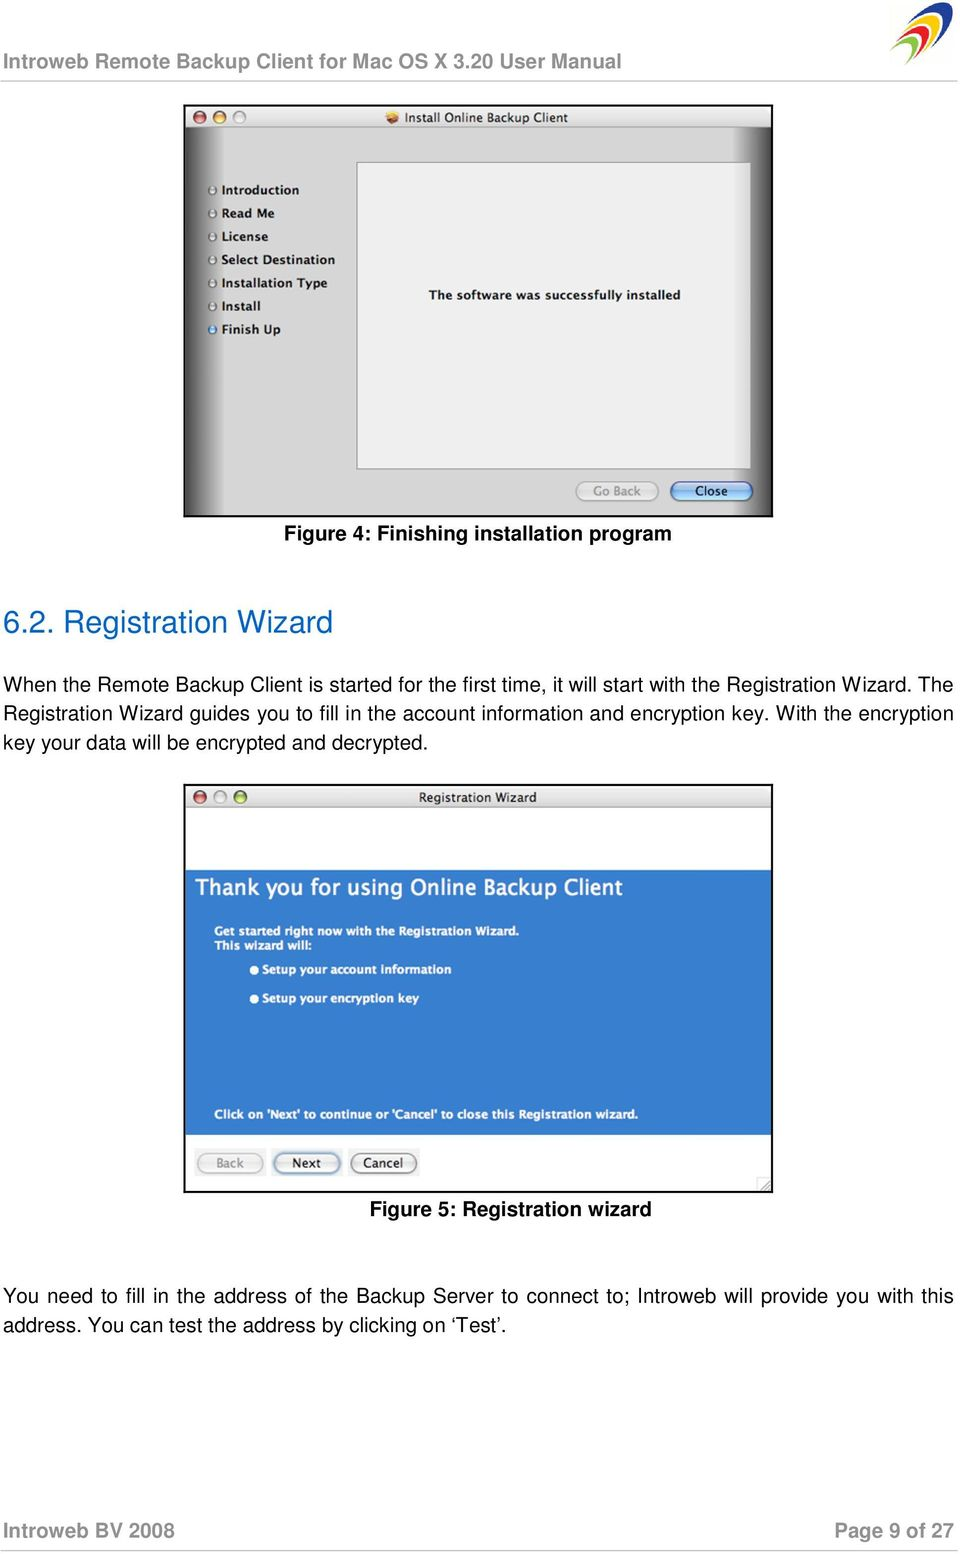 The Registration Wizard guides you to fill in the account information and encryption key.